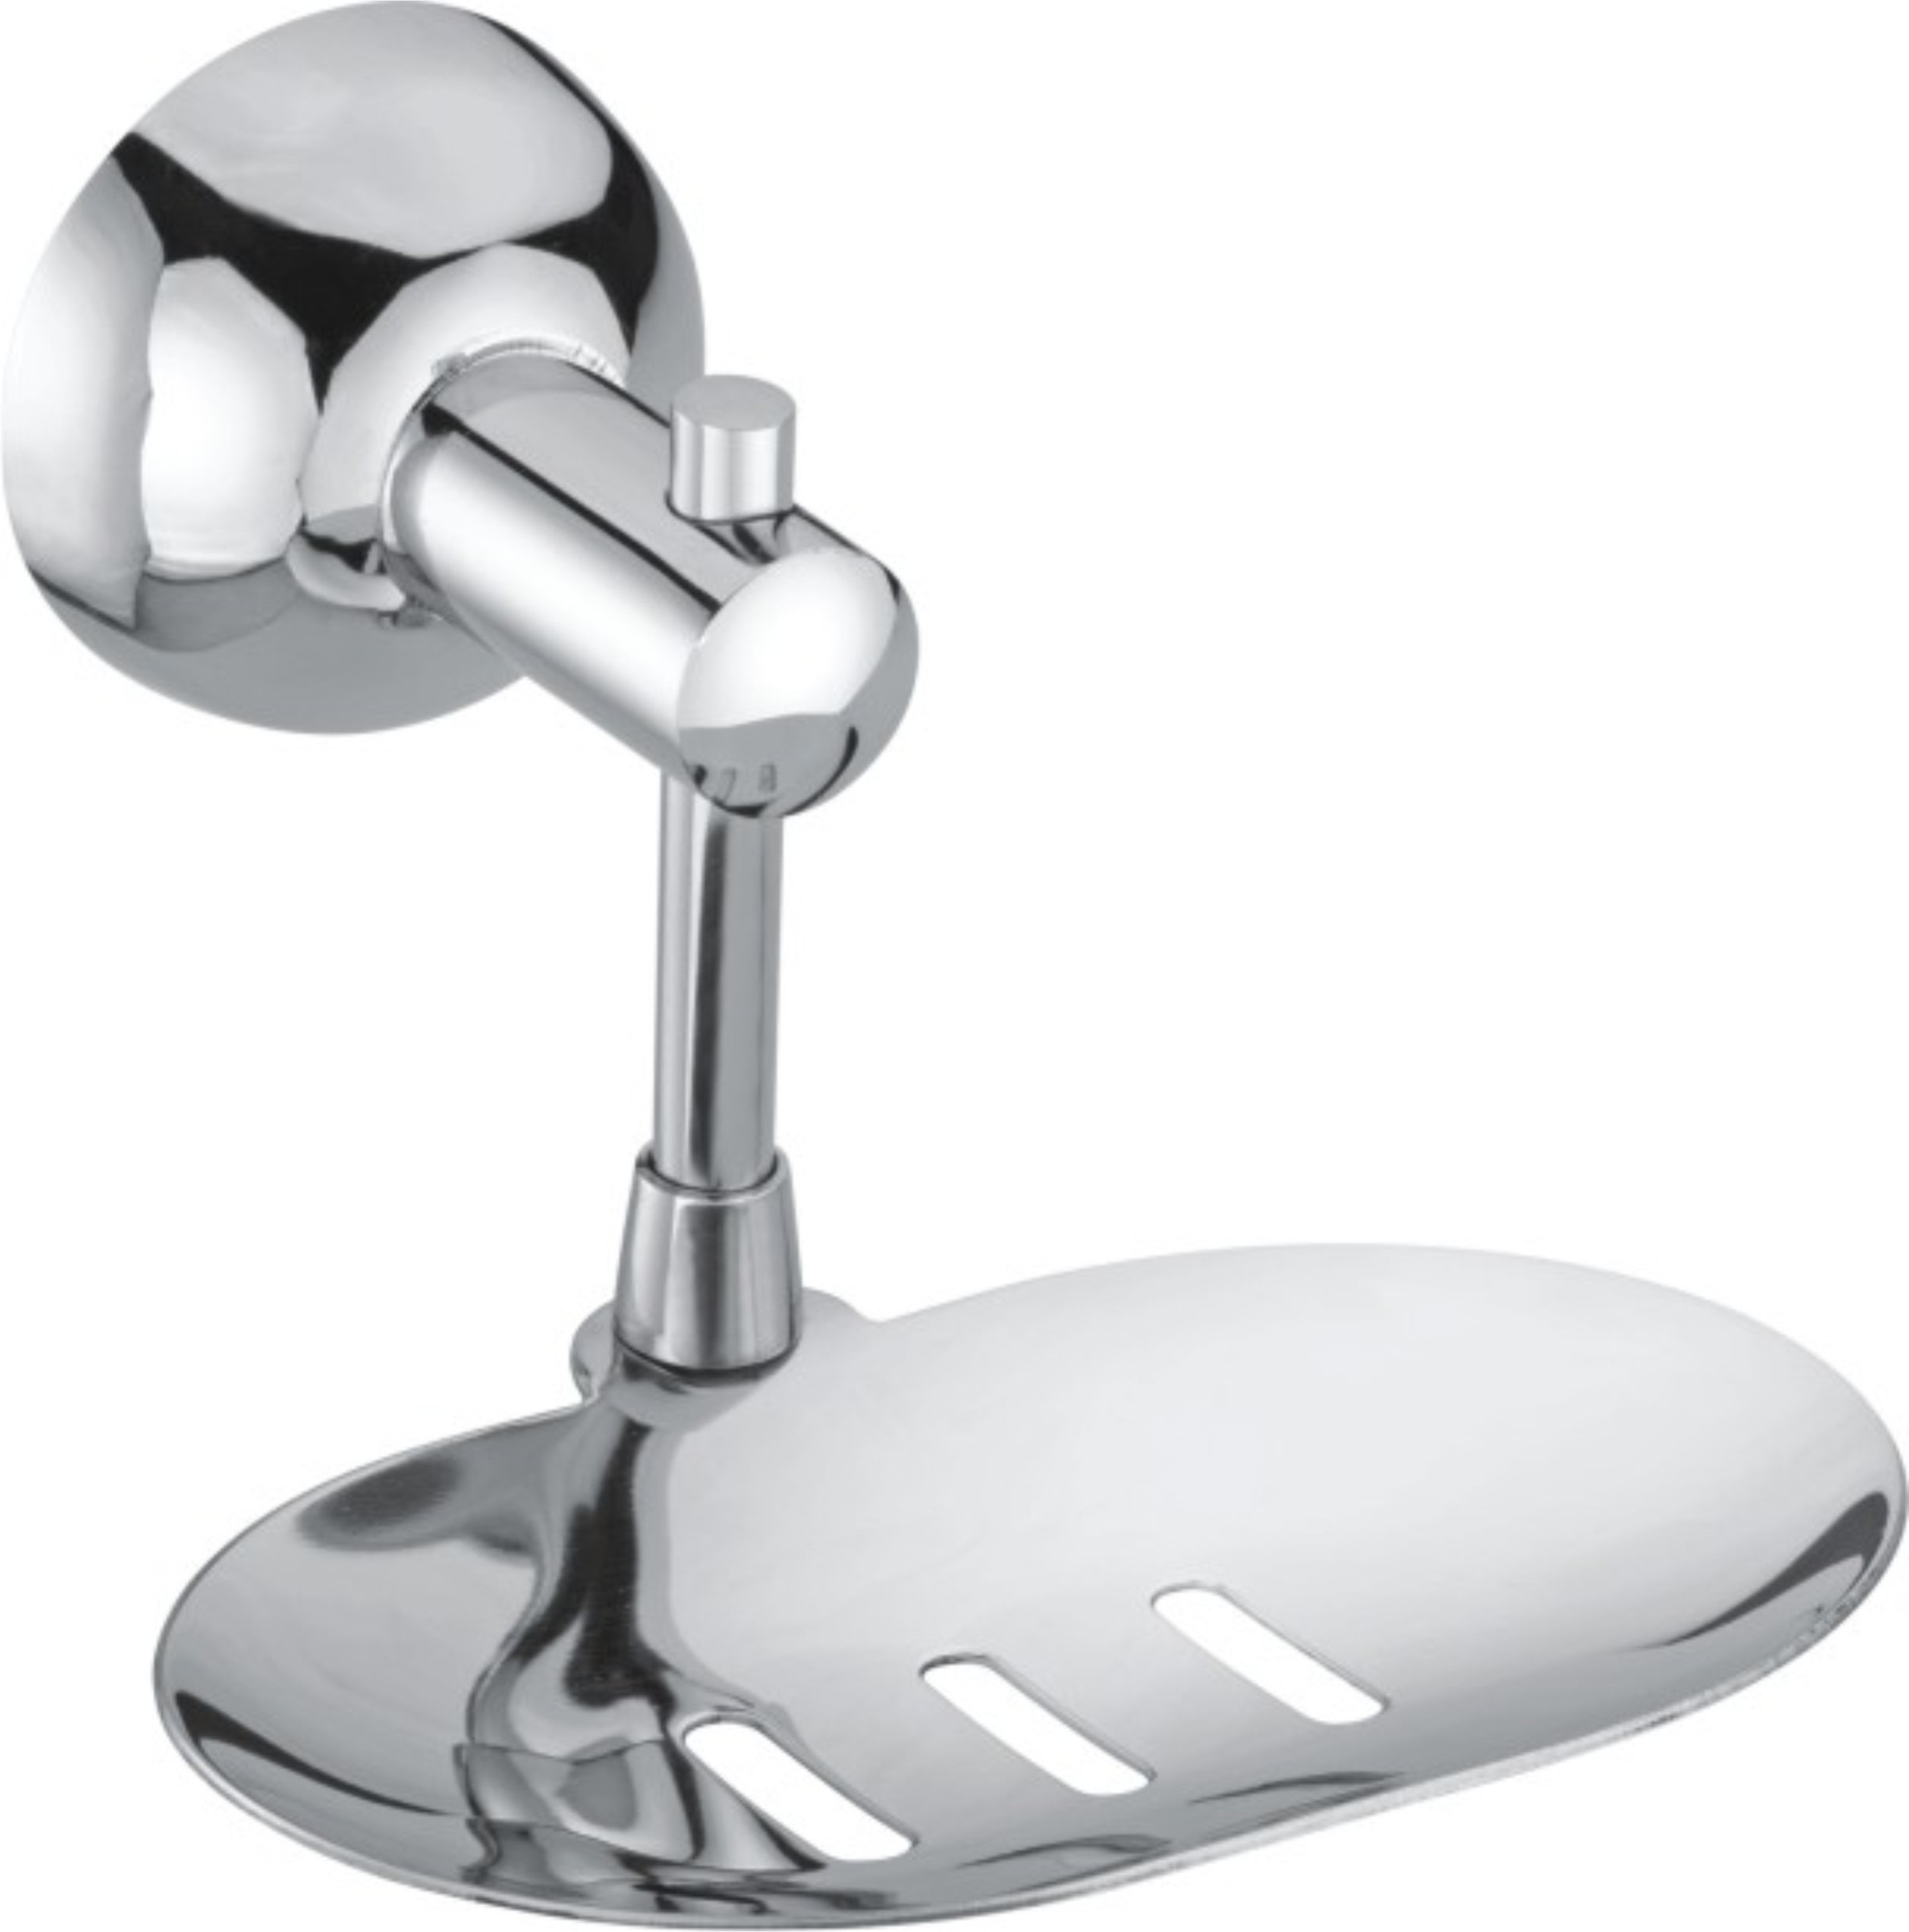 Deals - Noida - Under ₹499 <br> Soap Dishes<br> Category - tools_hardware<br> Business - Flipkart.com